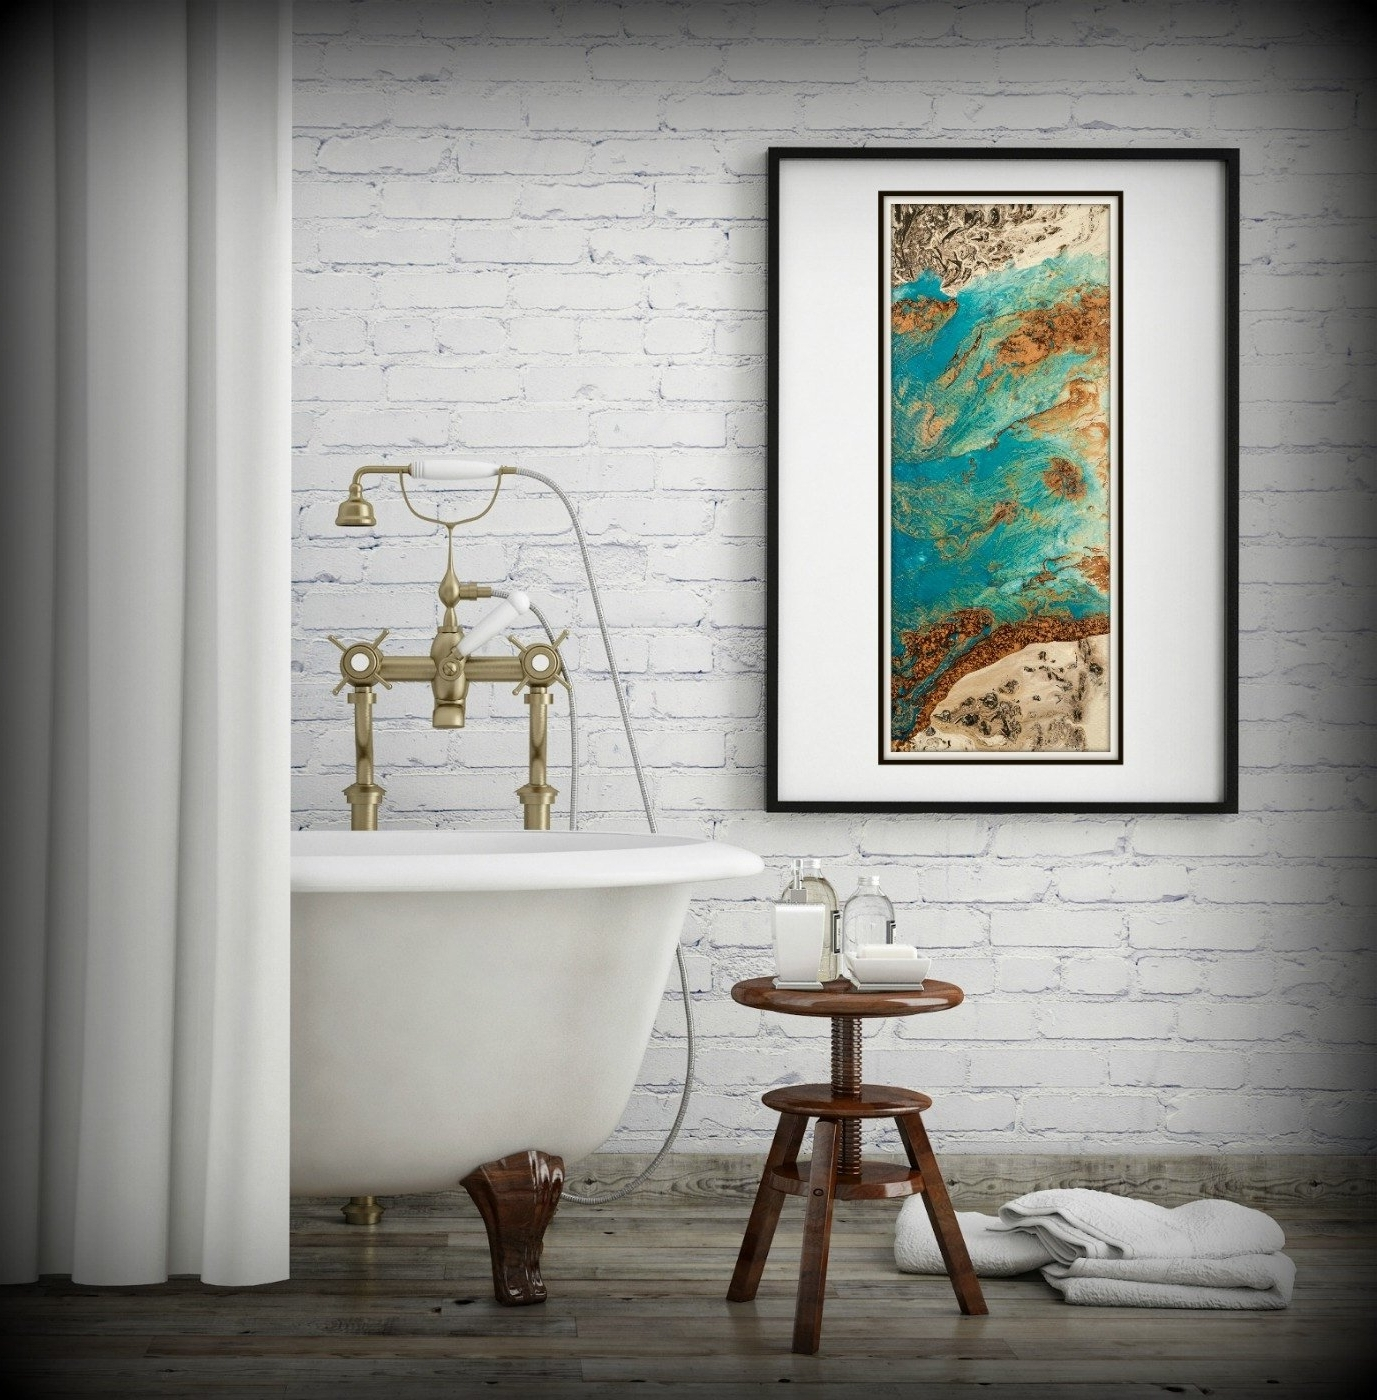 Newest Vertical Wall Art Intended For Blue And Copper Art, Vertical Wall Art Prints Fine Art Prints (View 10 of 15)